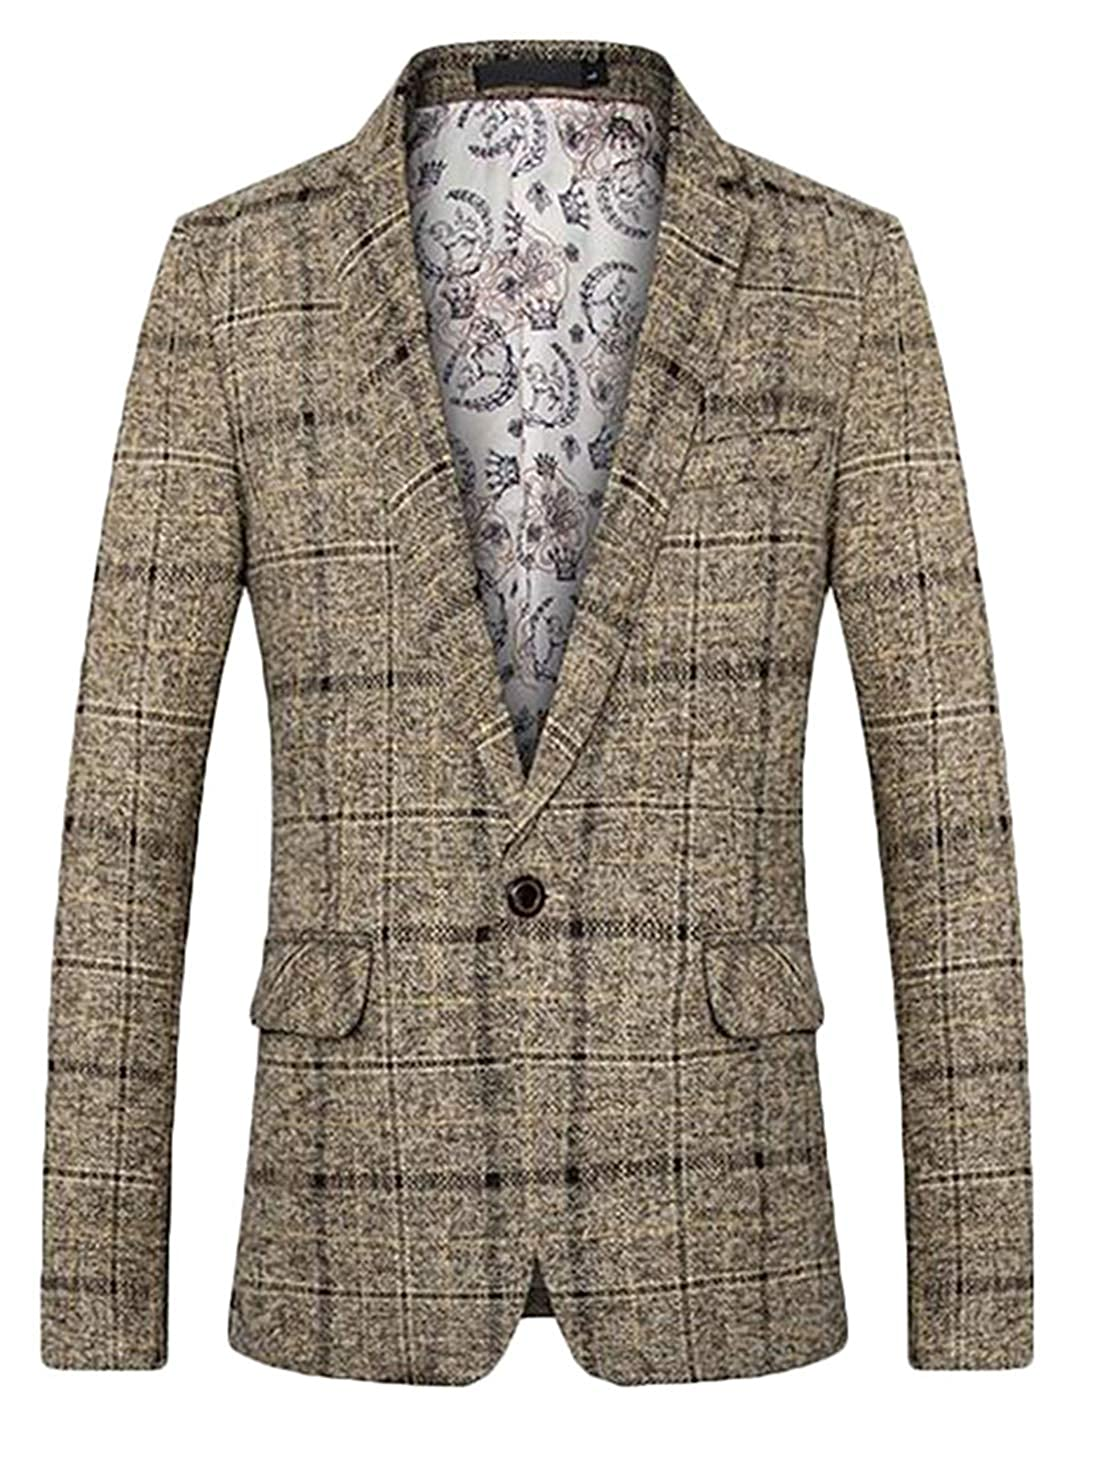 Twcx Mens Casual Flap Pockets One Button Checked Lightweight Slim Fit Jackets Blazer